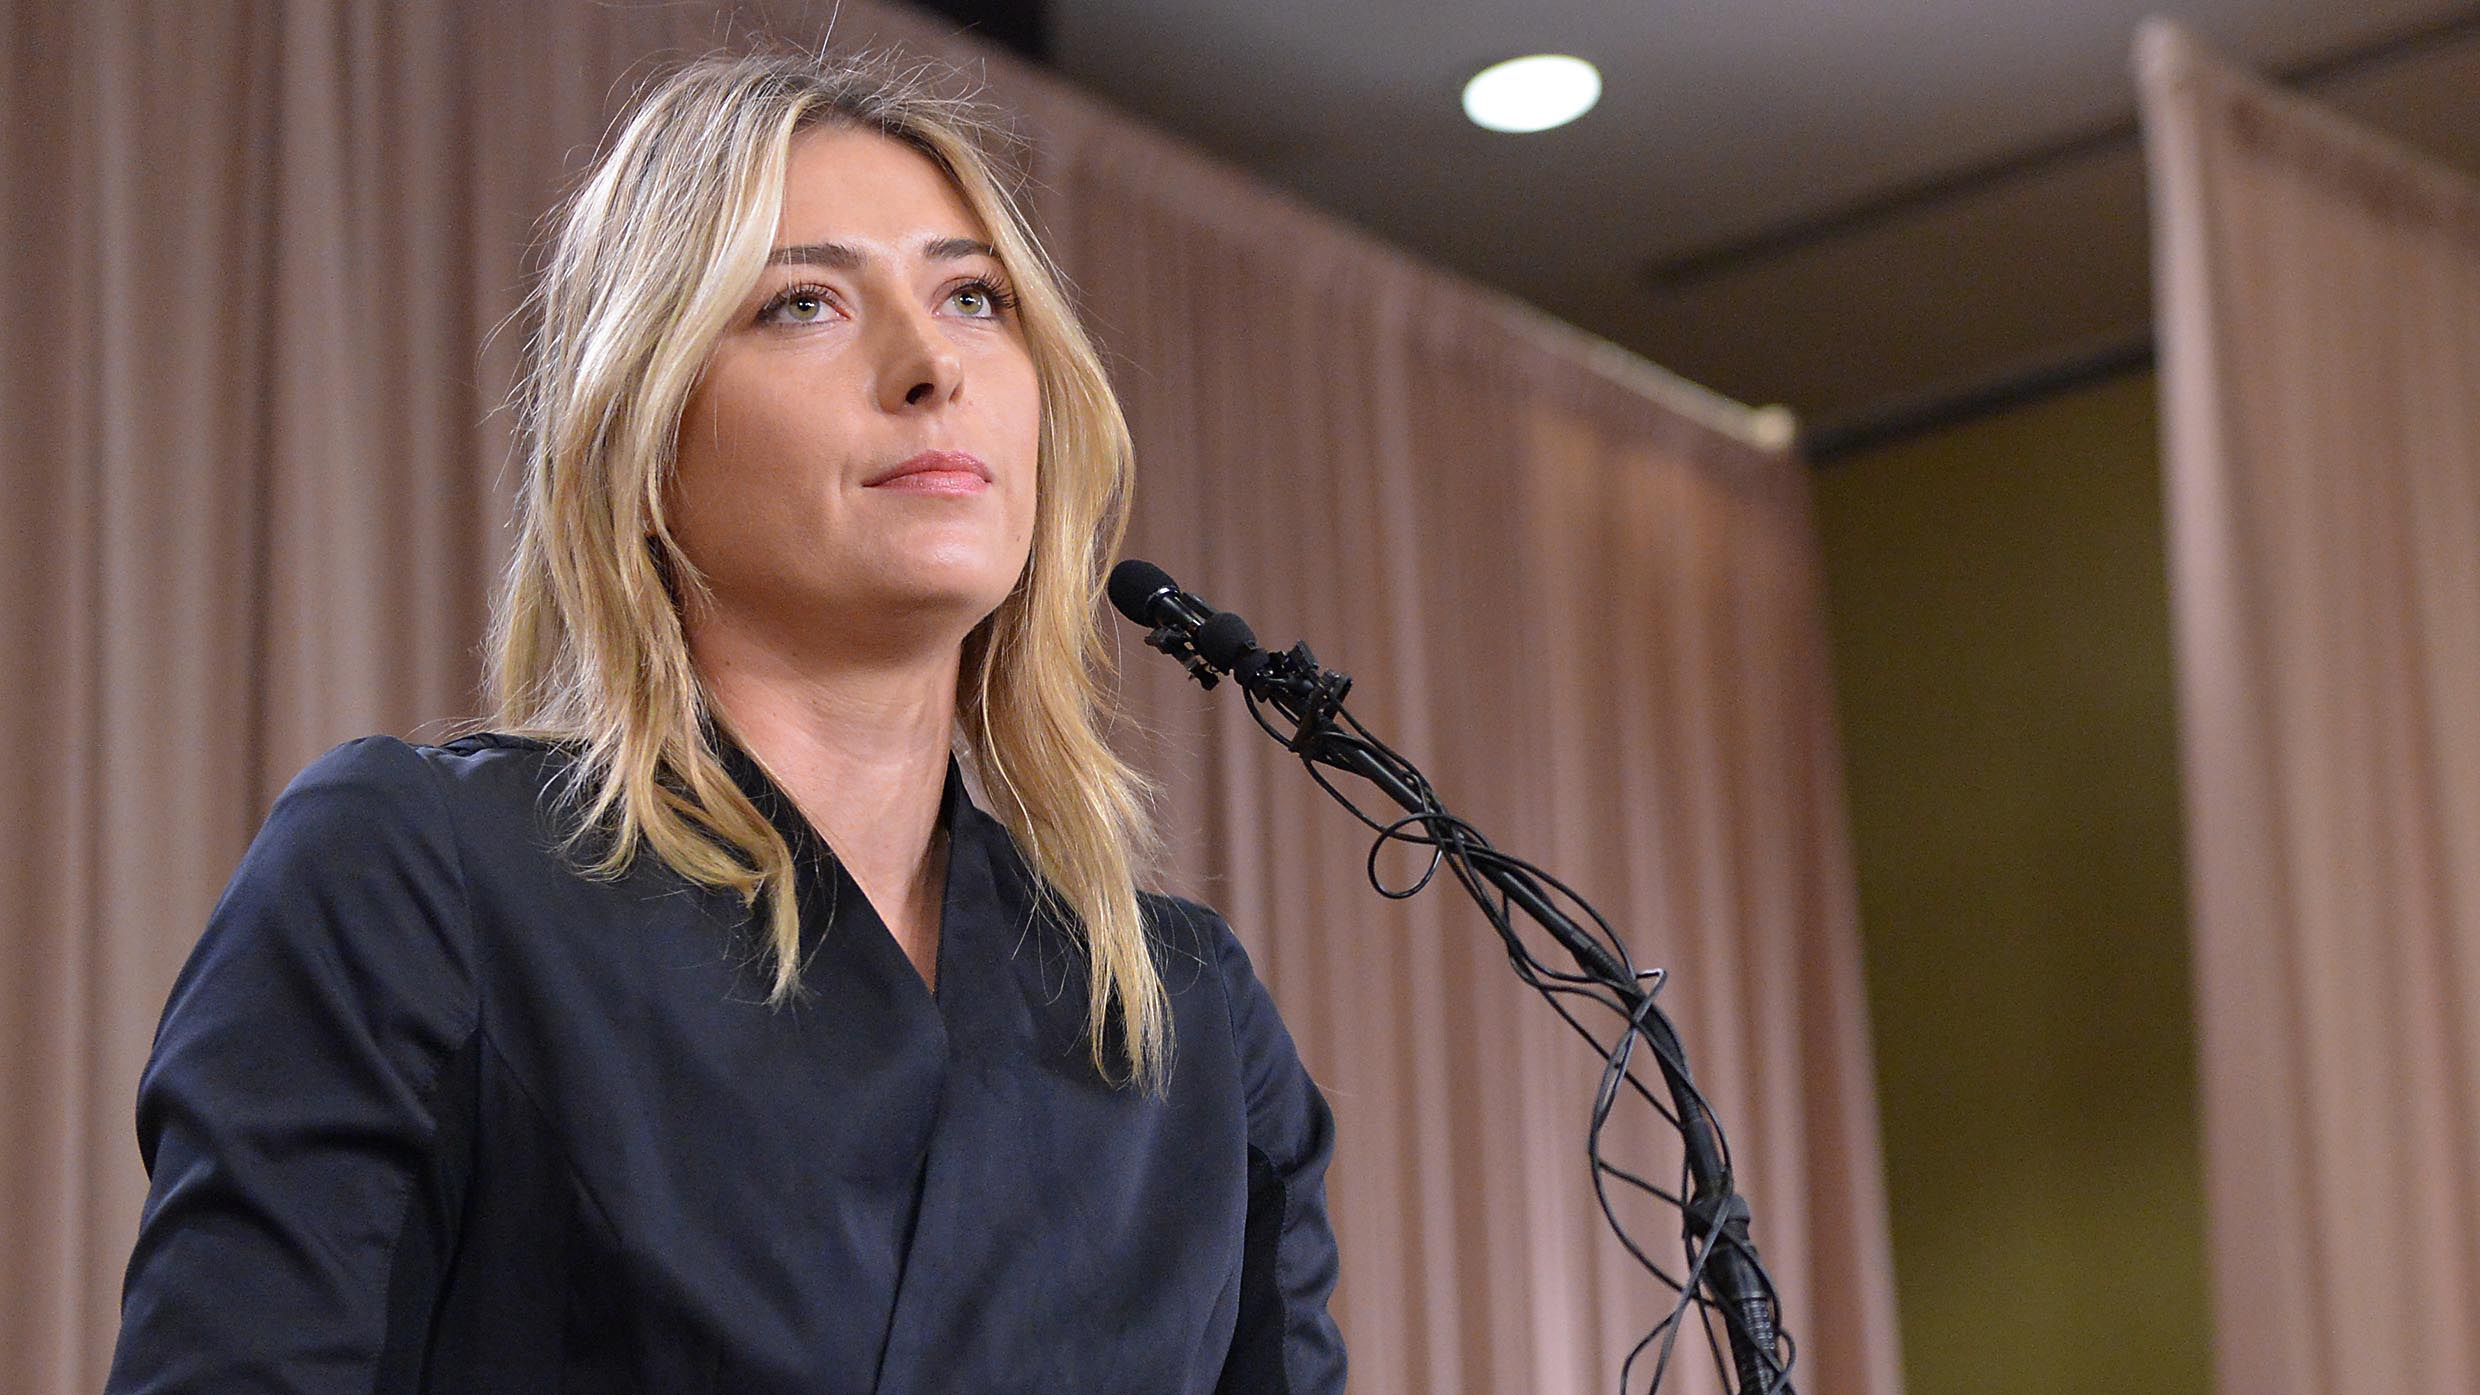 Maria Sharapova speaks to the media announcing a failed drug test after the Australian Open during a press conference today at The LA Hotel Downtown.